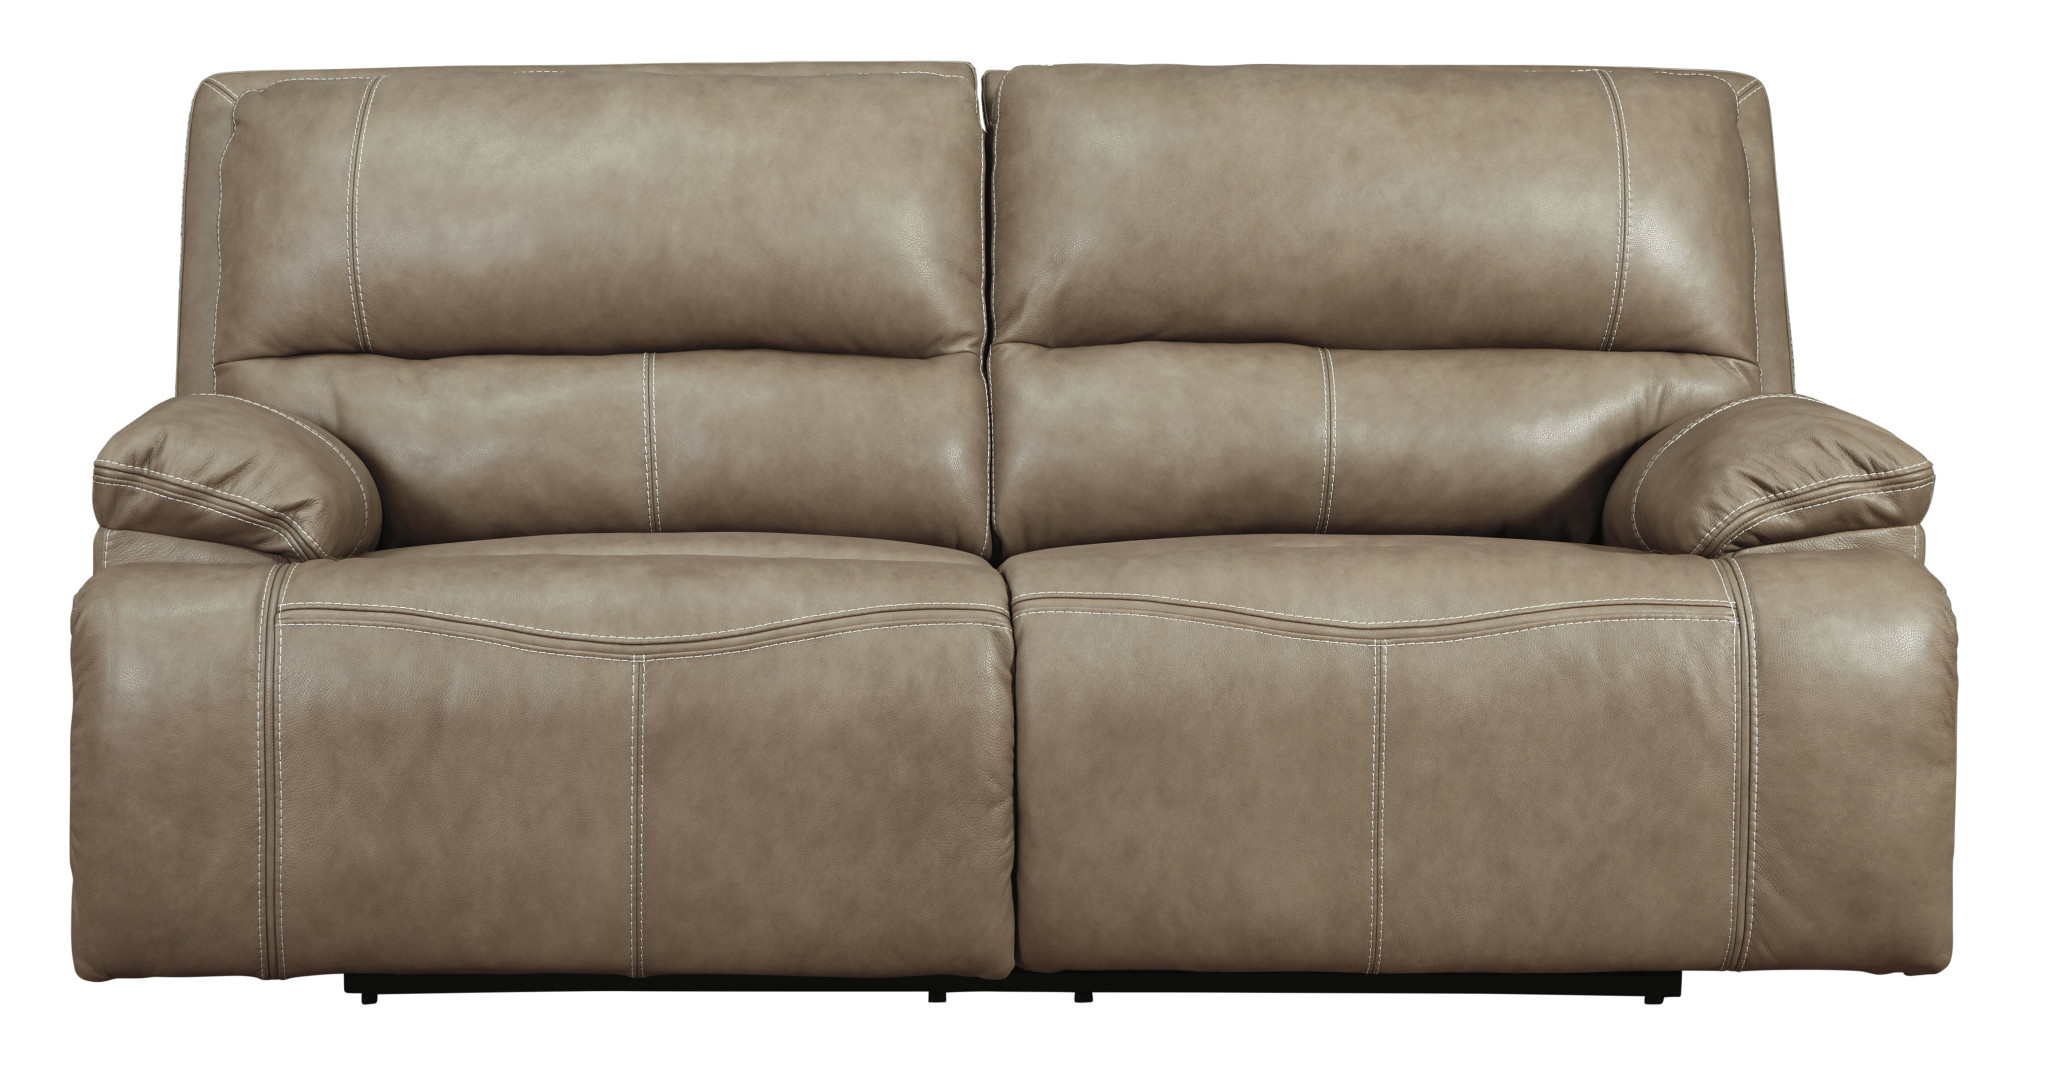 Signature Design 2 Seat Power Reclining Sofa w/ Adjustable Headrest, Ricmen, Putty Color U4370247